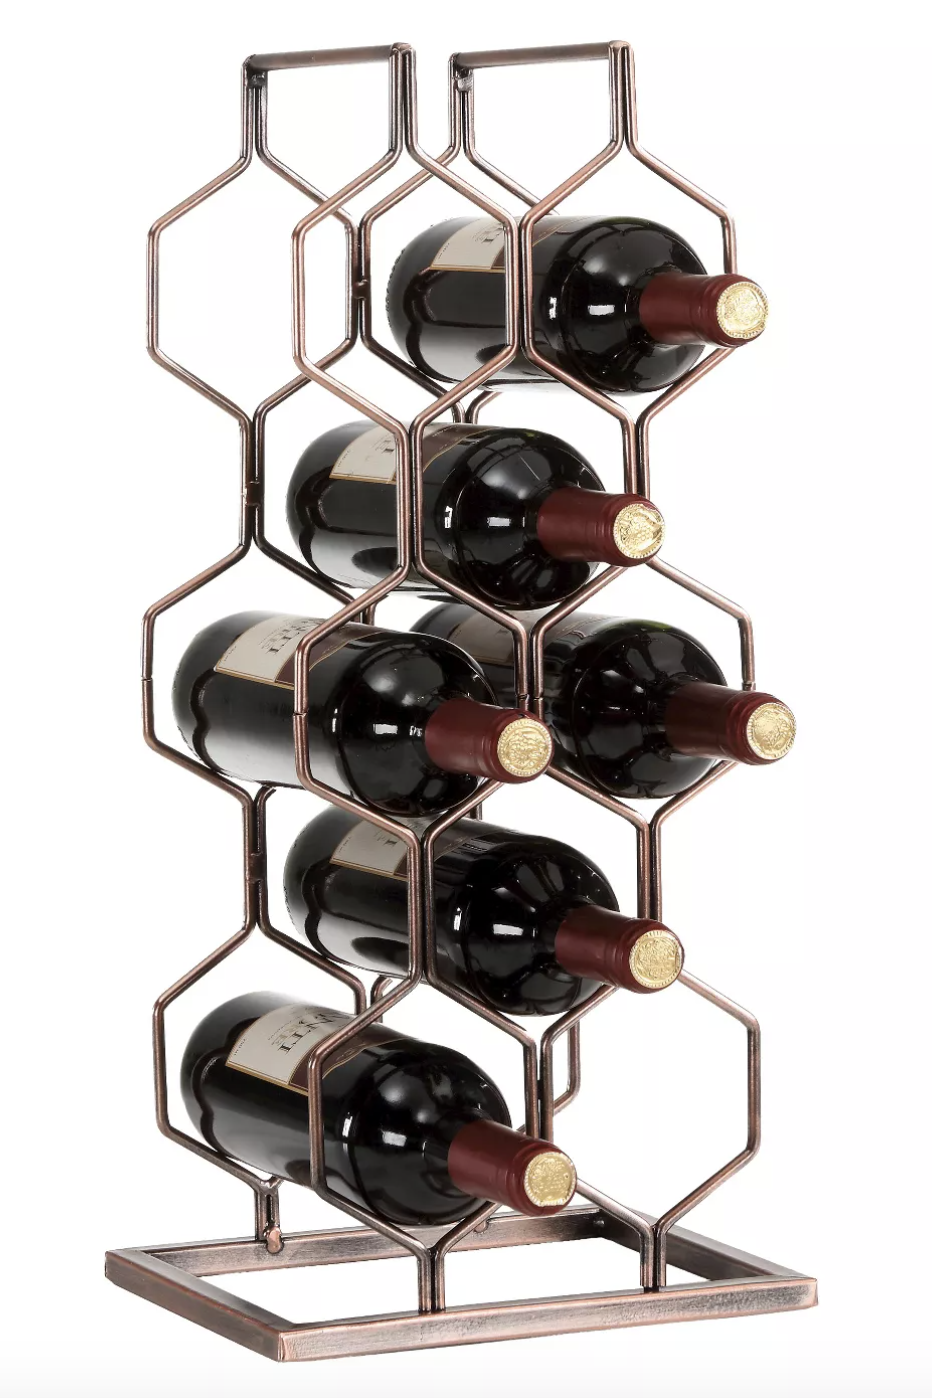 "<p><strong>Danya B.</strong></p><p>target.com</p><p><a href=""https://www.target.com/p/danya-b-8-bottle-electroplated-wine-rack-copper/-/A-51107858"" rel=""nofollow noopener"" target=""_blank"" data-ylk=""slk:CHECK PRICE"" class=""link rapid-noclick-resp"">CHECK PRICE</a></p><p>This hexagon geometric wine rack holds eight bottles and is great for countertops and tables with little space since it stores bottles in a vertical structure. The rack is made of iron and measures 20""H x 9.5""W x 7.75""D. </p>"